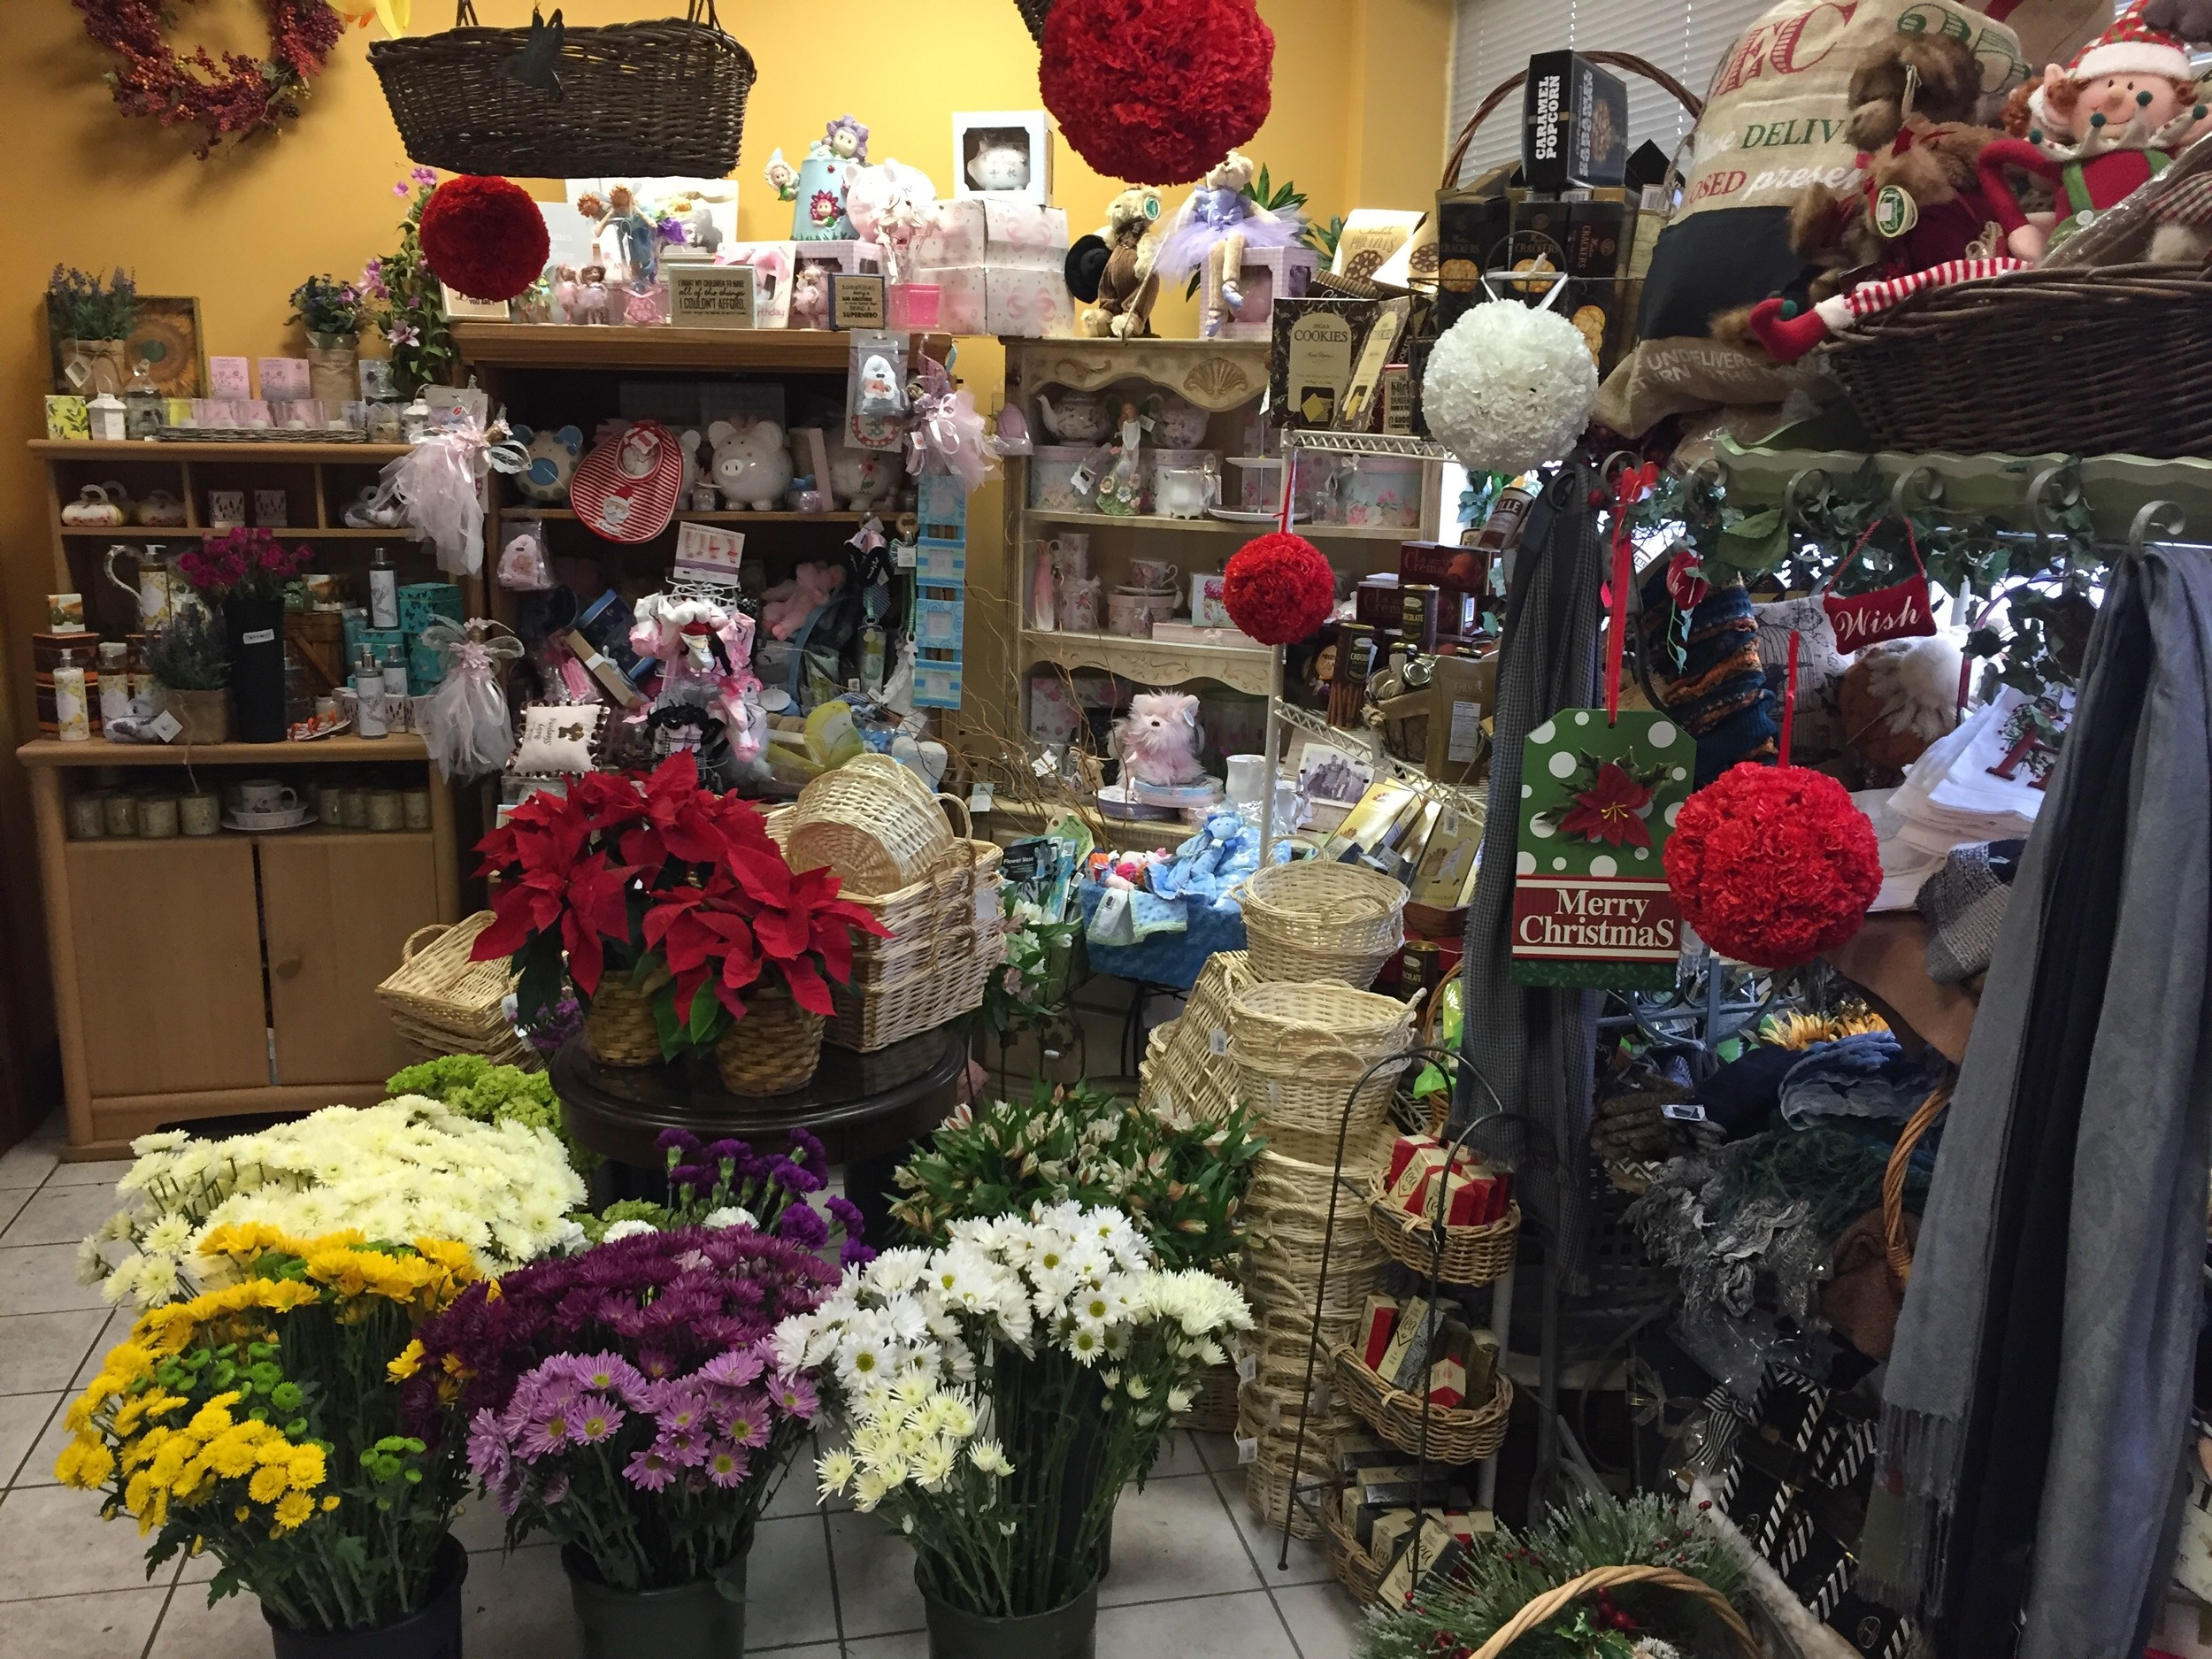 The floral shop offers flowers and plants, fruit and gourmet baskets, holiday centerpieces and other gifts.